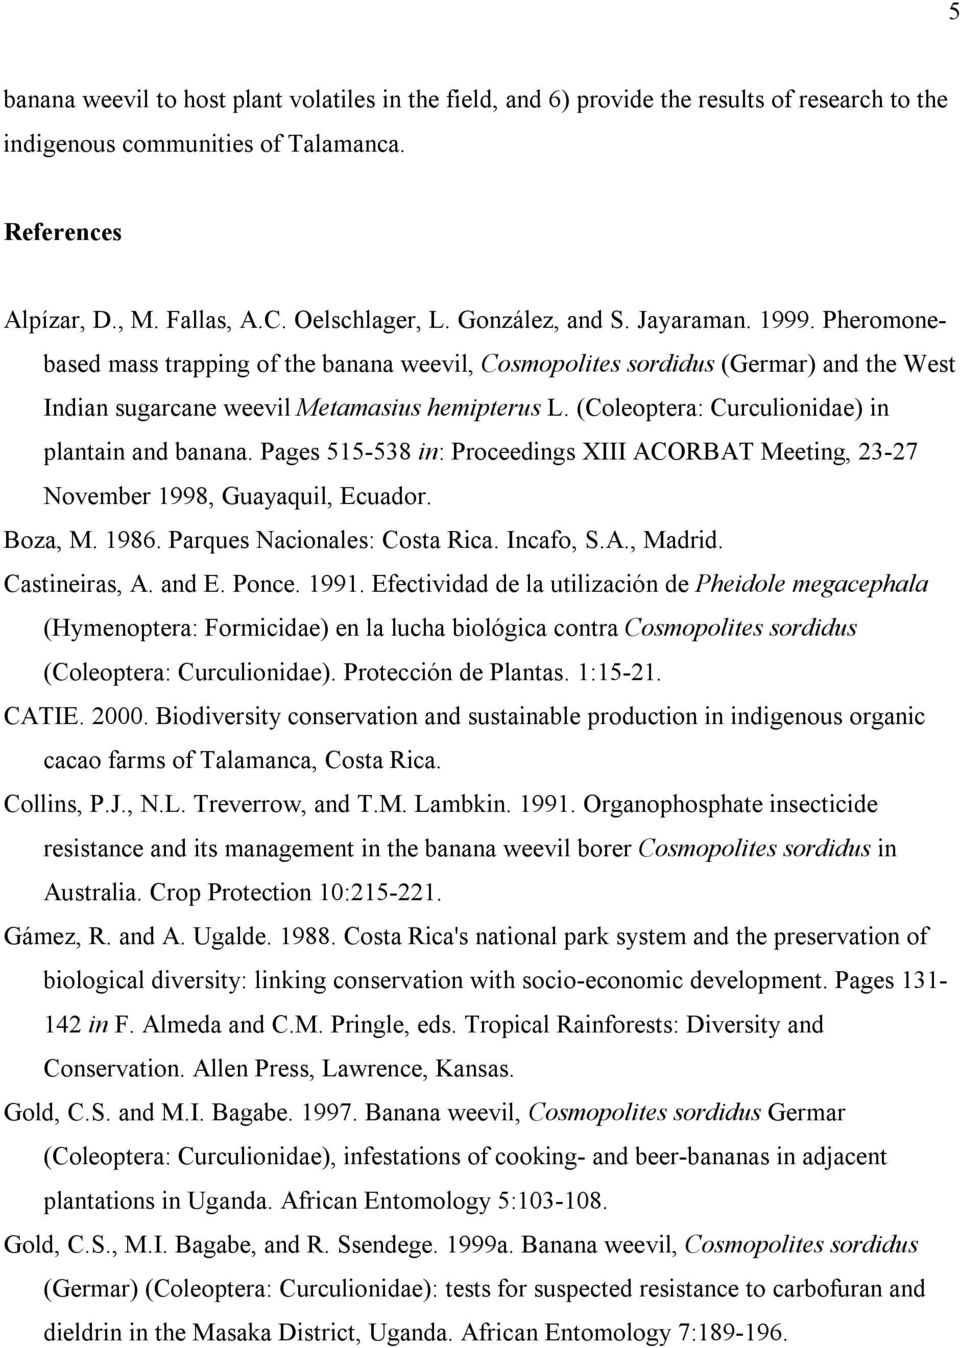 (Coleoptera: Curculionidae) in plantain and banana. Pages 515-538 in: Proceedings XIII ACORBAT Meeting, 23-27 November 1998, Guayaquil, Ecuador. Boza, M. 1986. Parques Nacionales: Costa Rica.